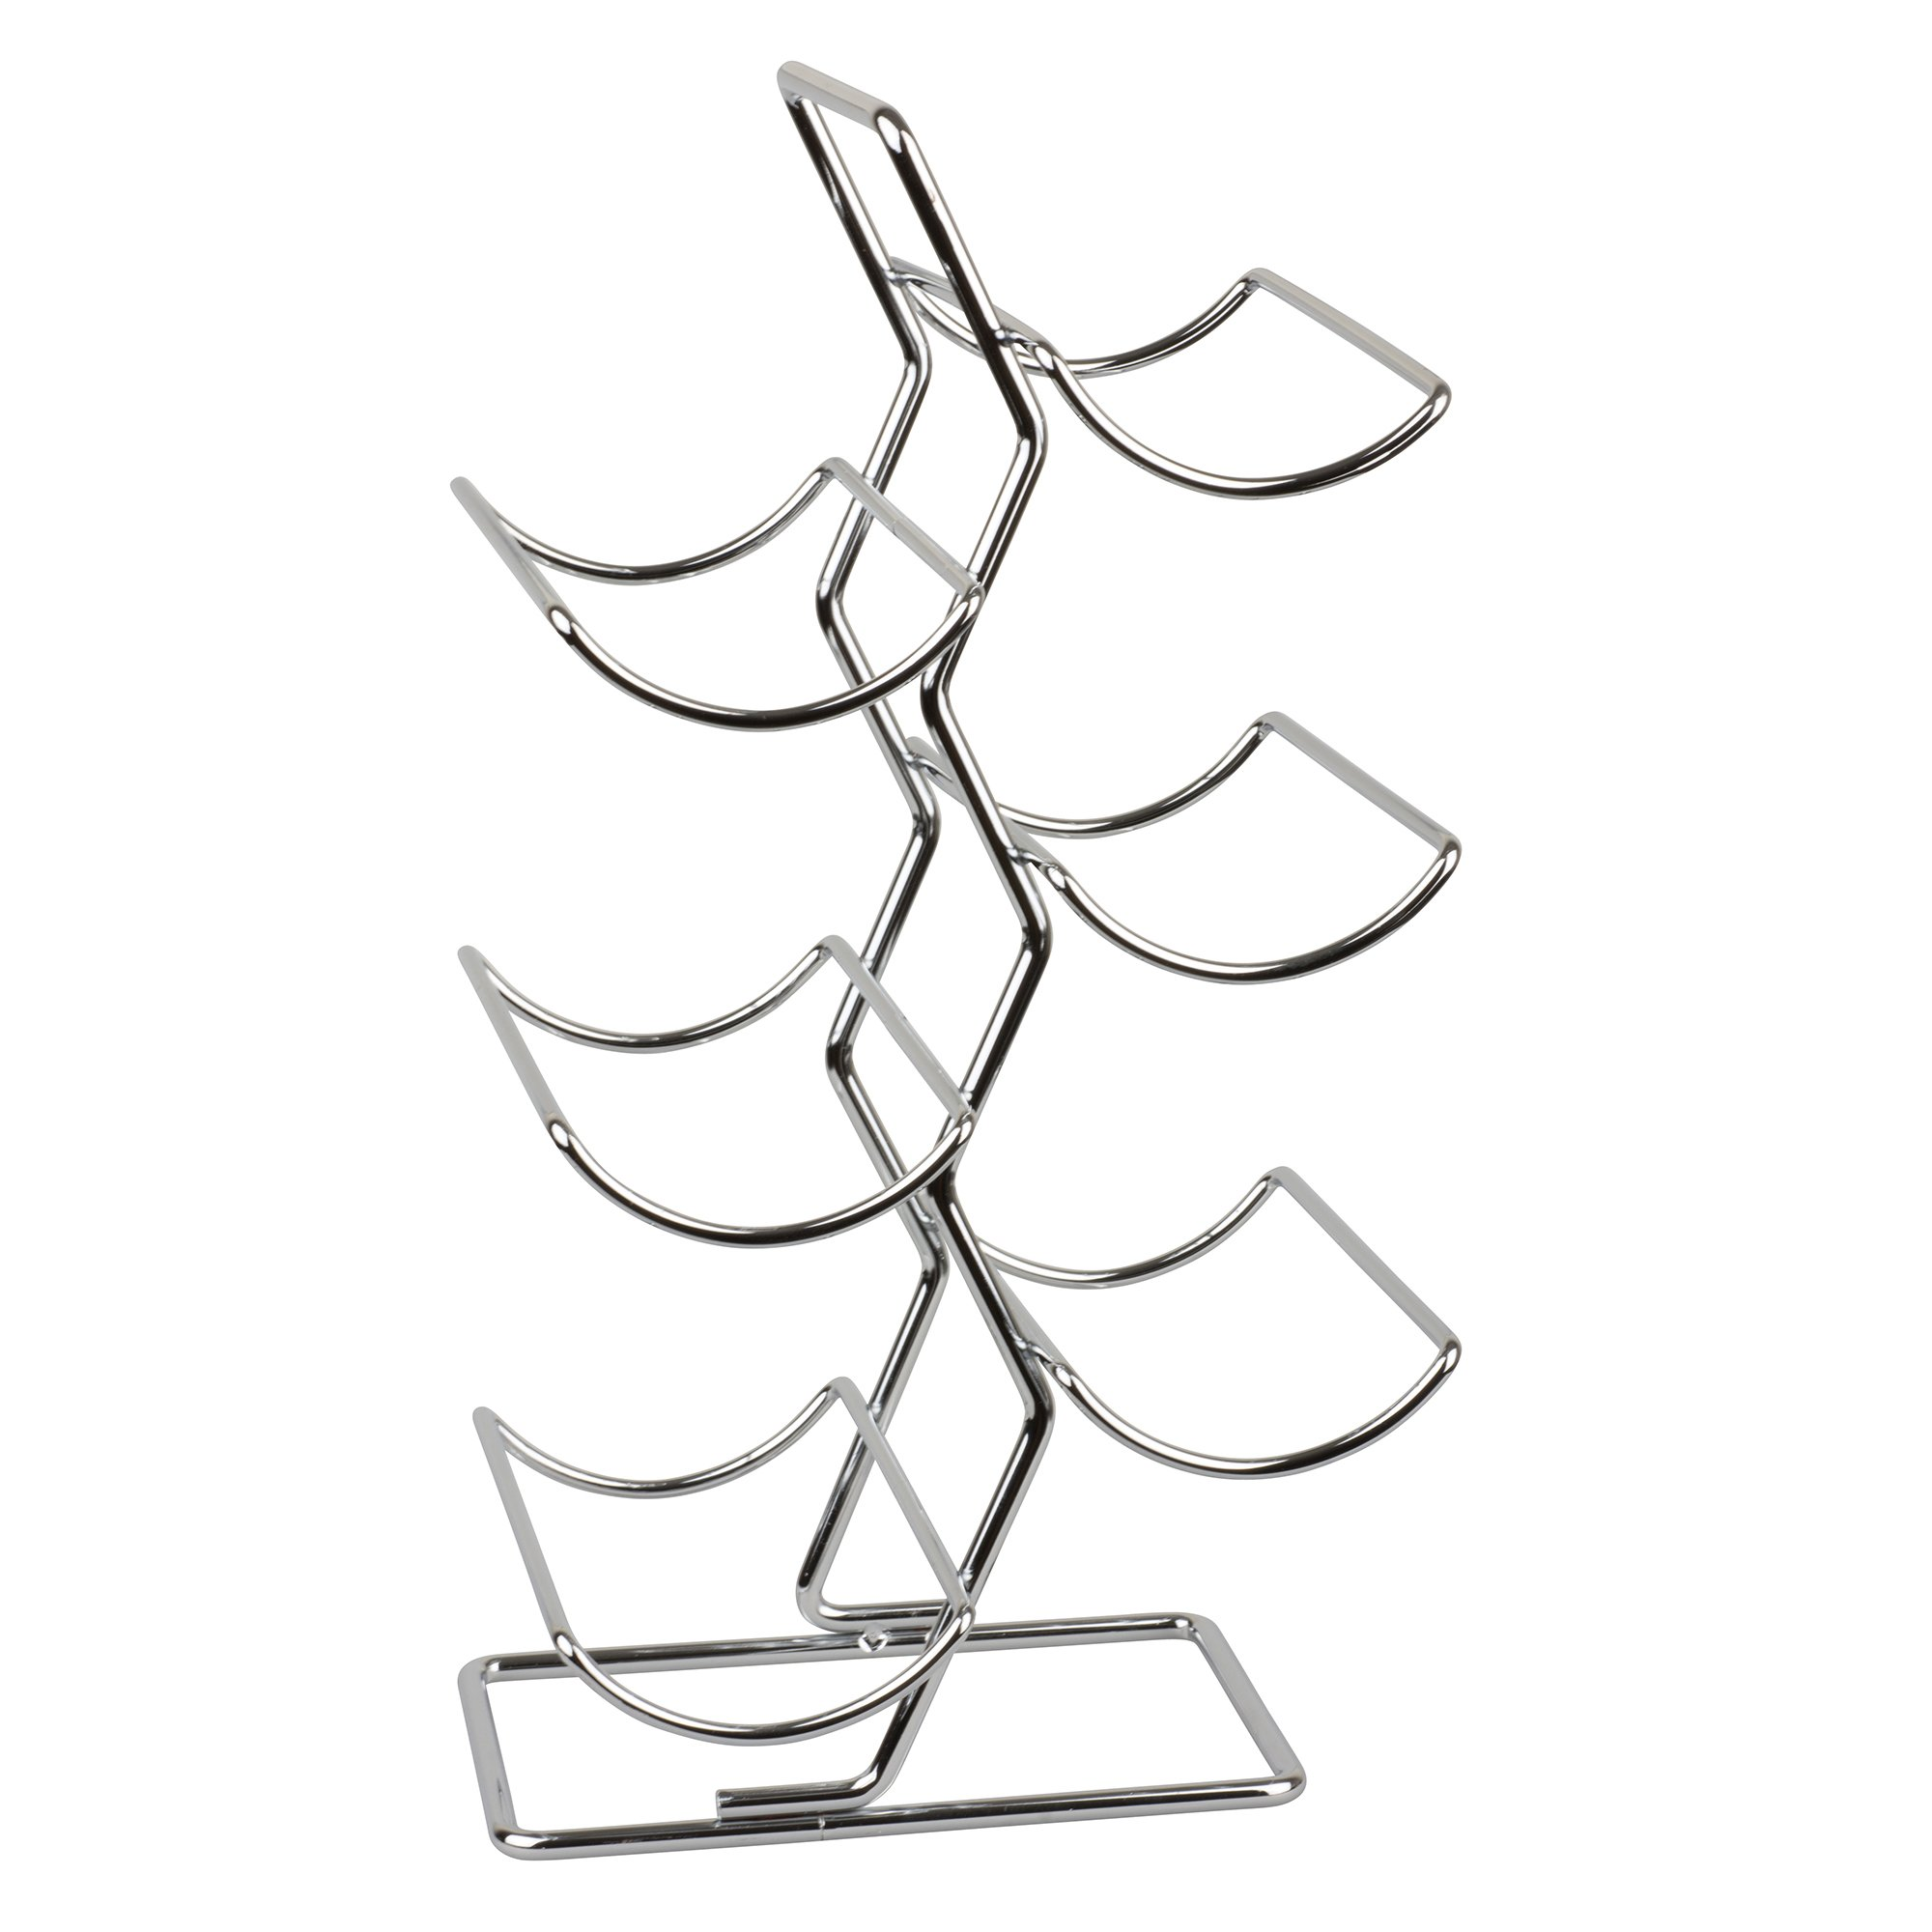 It's Useful Standing Wine Rack Holder – Hold, Store and Display Up to 6 Wine Bottles – Sleek Metal Chrome Stand